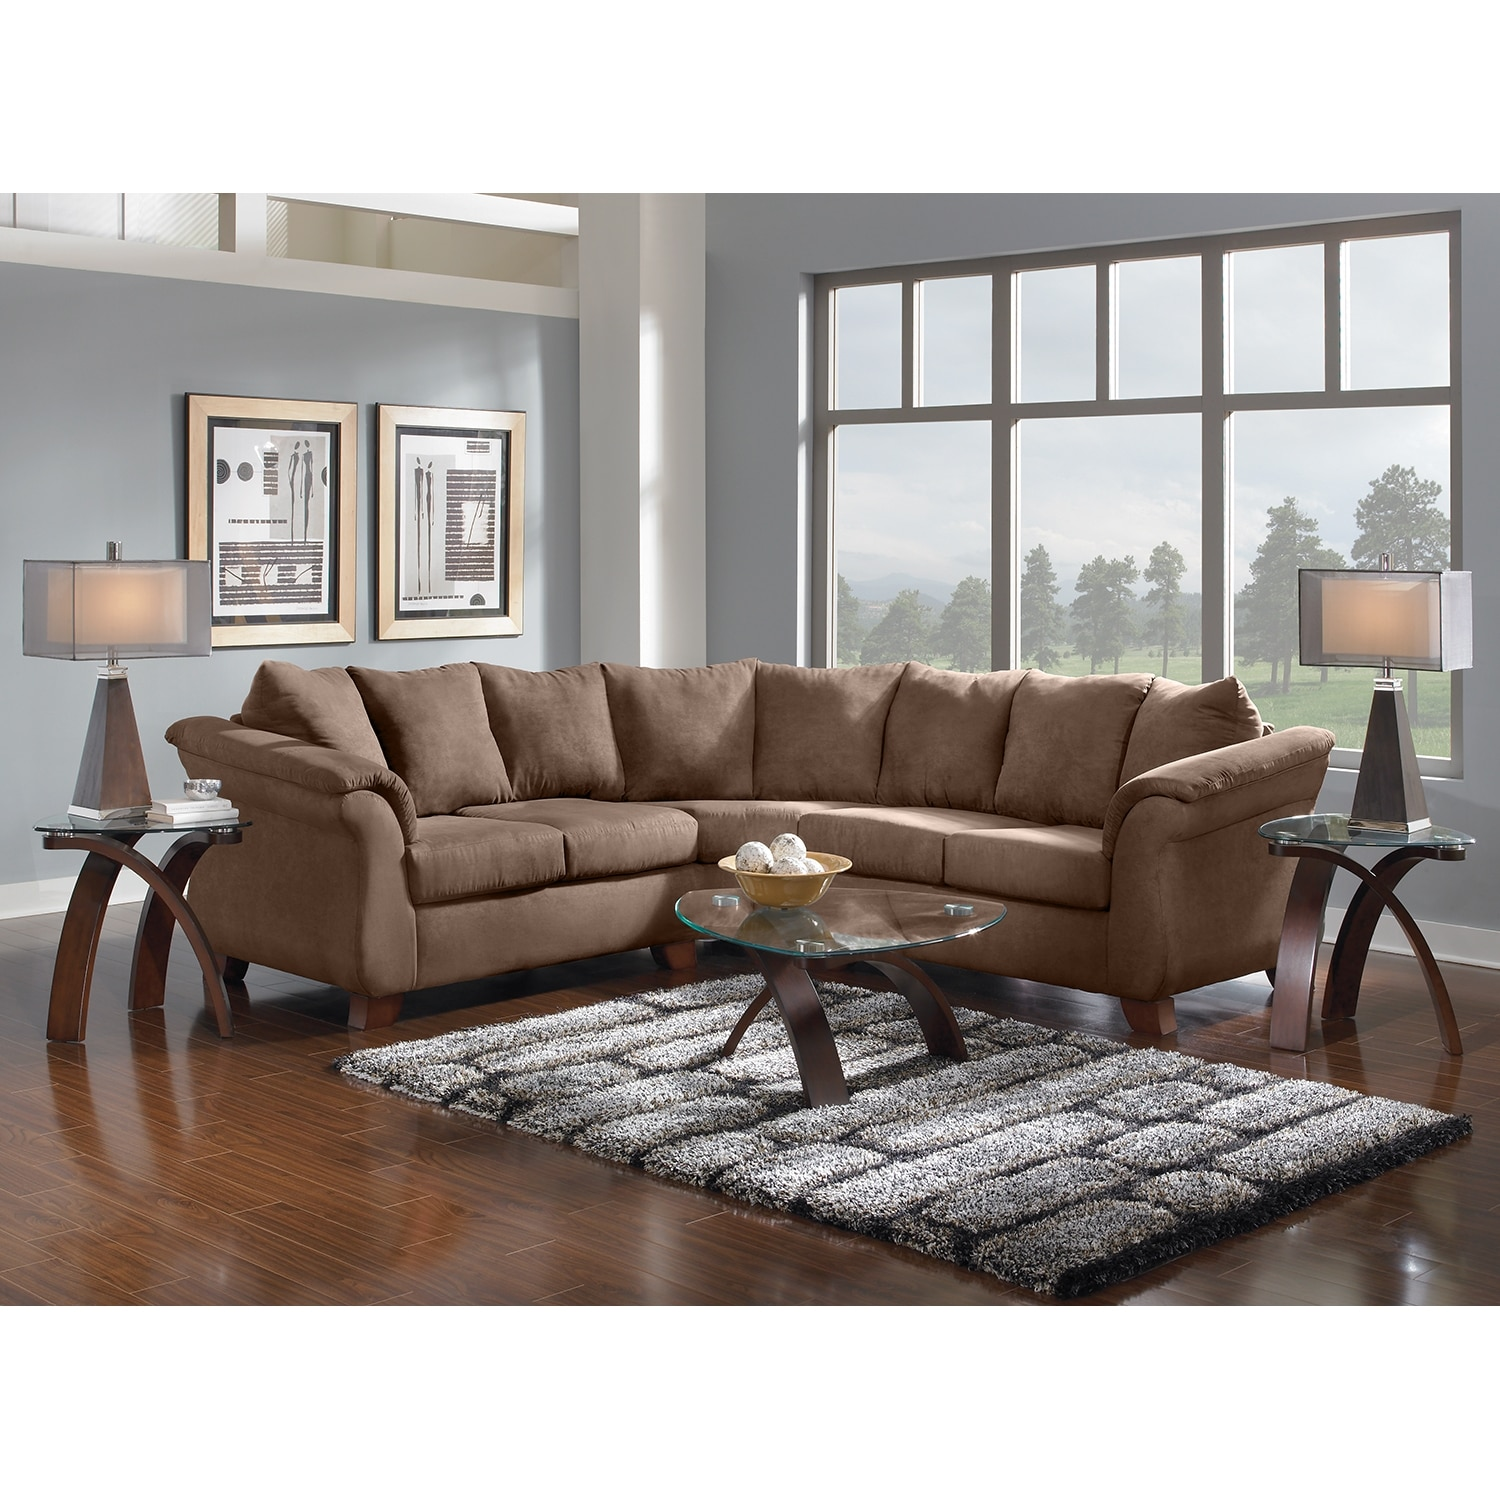 Adrian 2 piece sectional taupe value city furniture for Sectional furniture